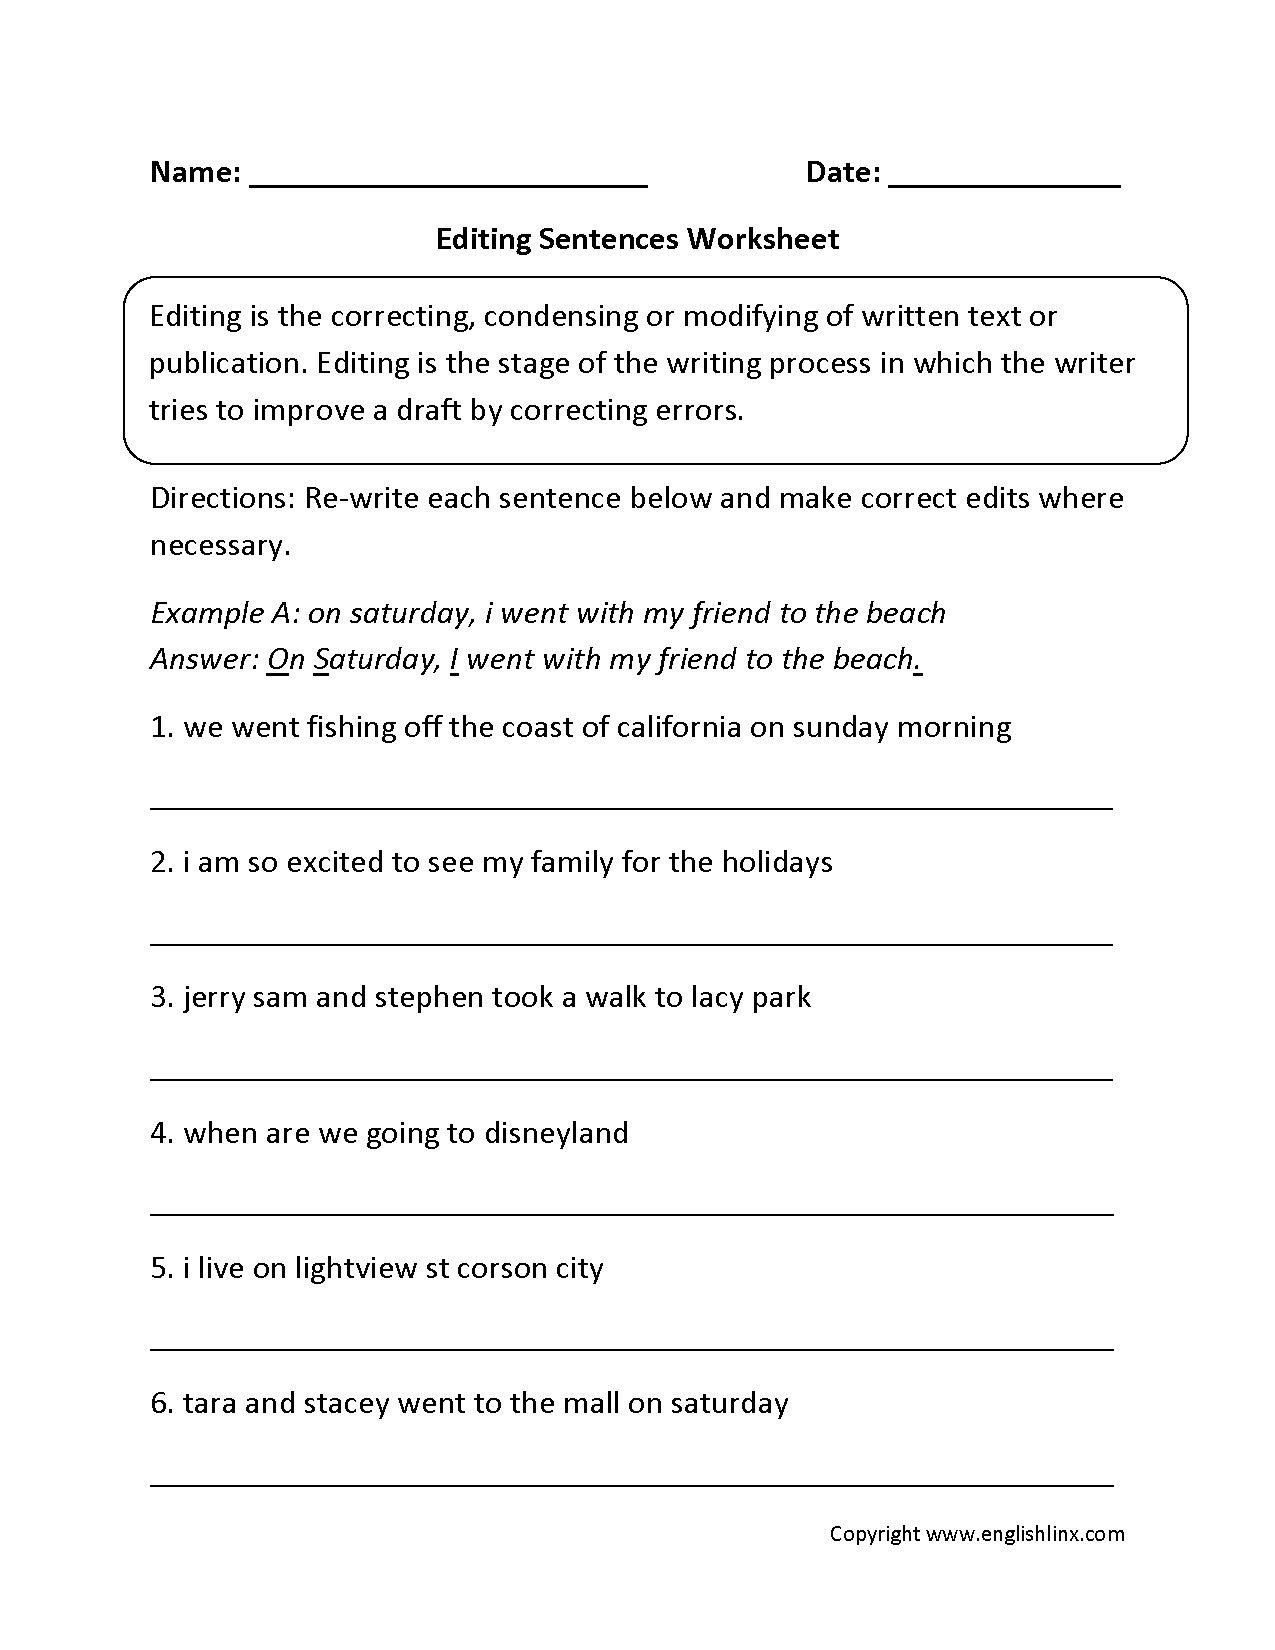 Free Printable Proofreading Worksheet Verd Tense